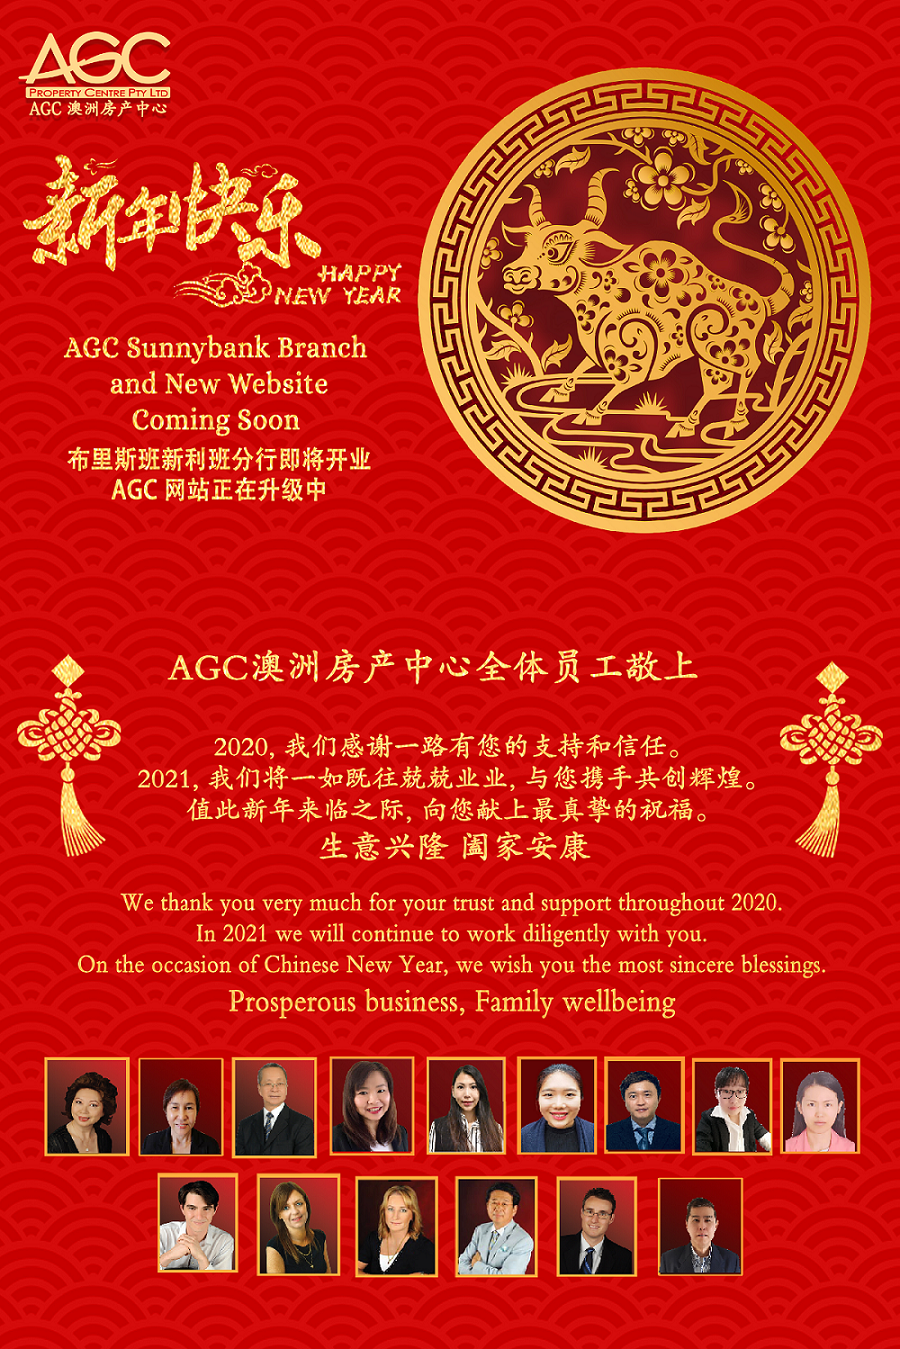 2021 Chinese New Year Greetings